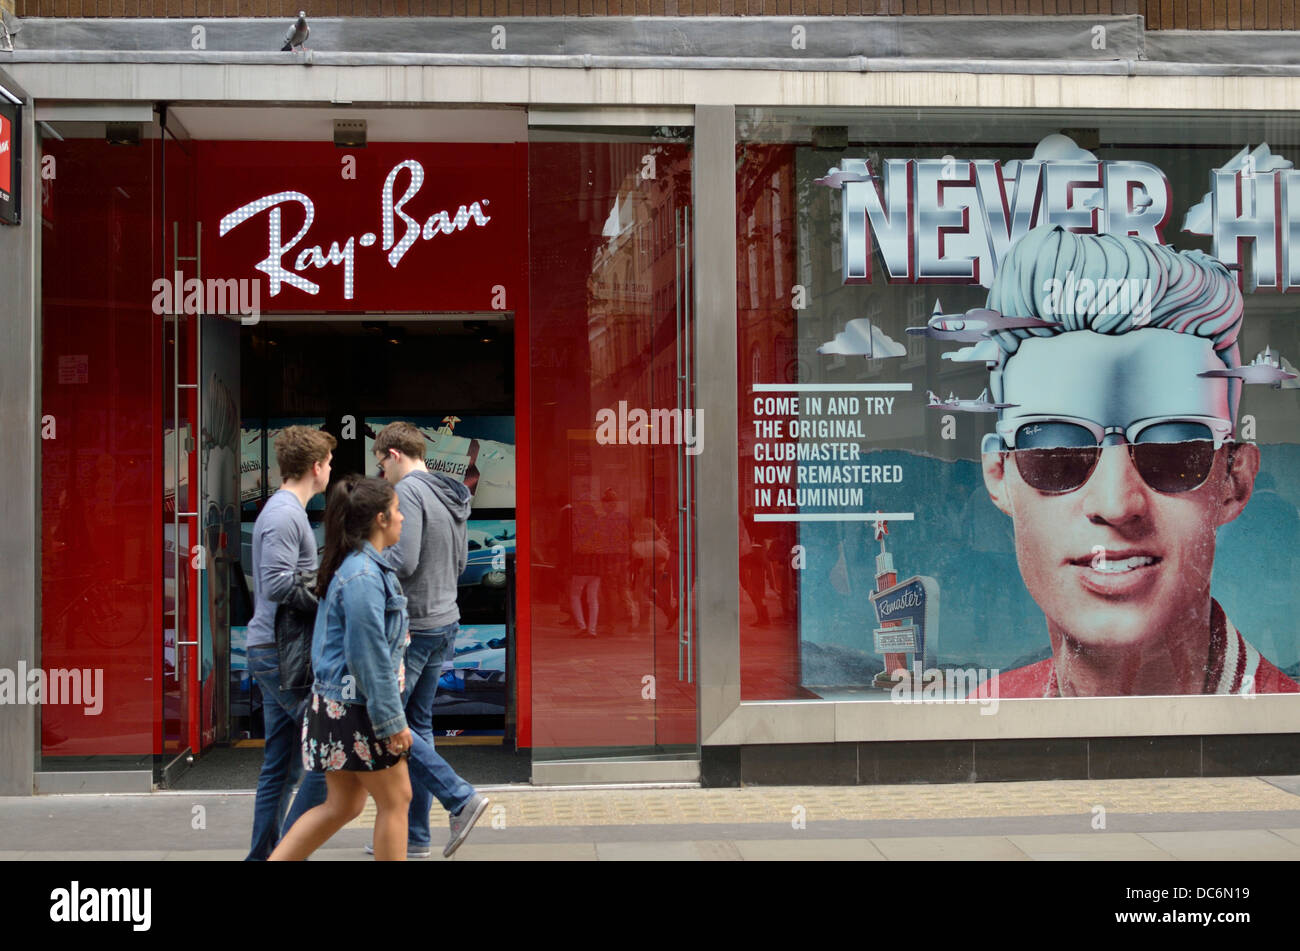 47399318fb Ray Ban Store Stock Photos   Ray Ban Store Stock Images - Alamy